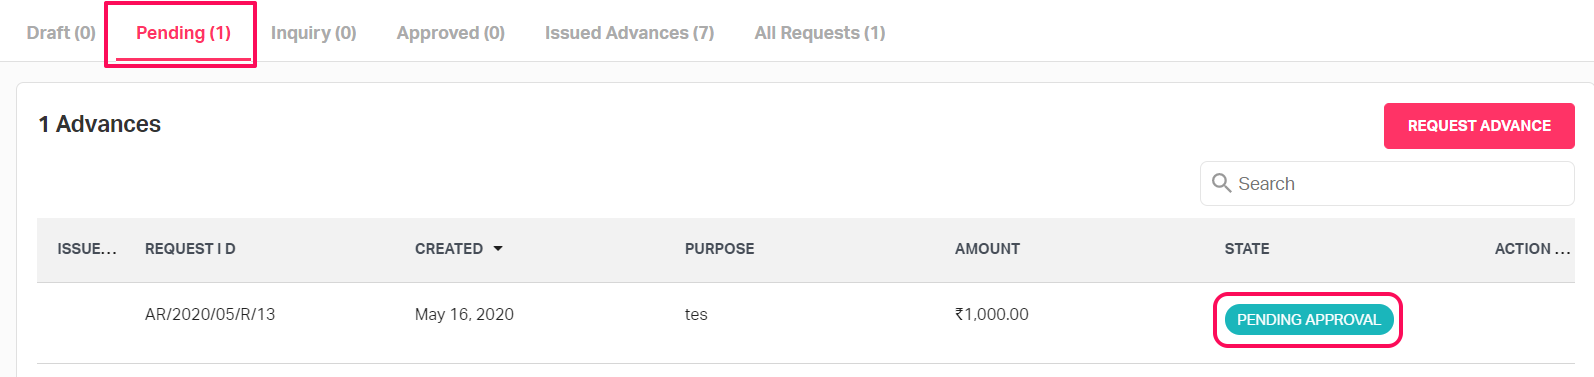 Sent to approver after resubmitting the advance request